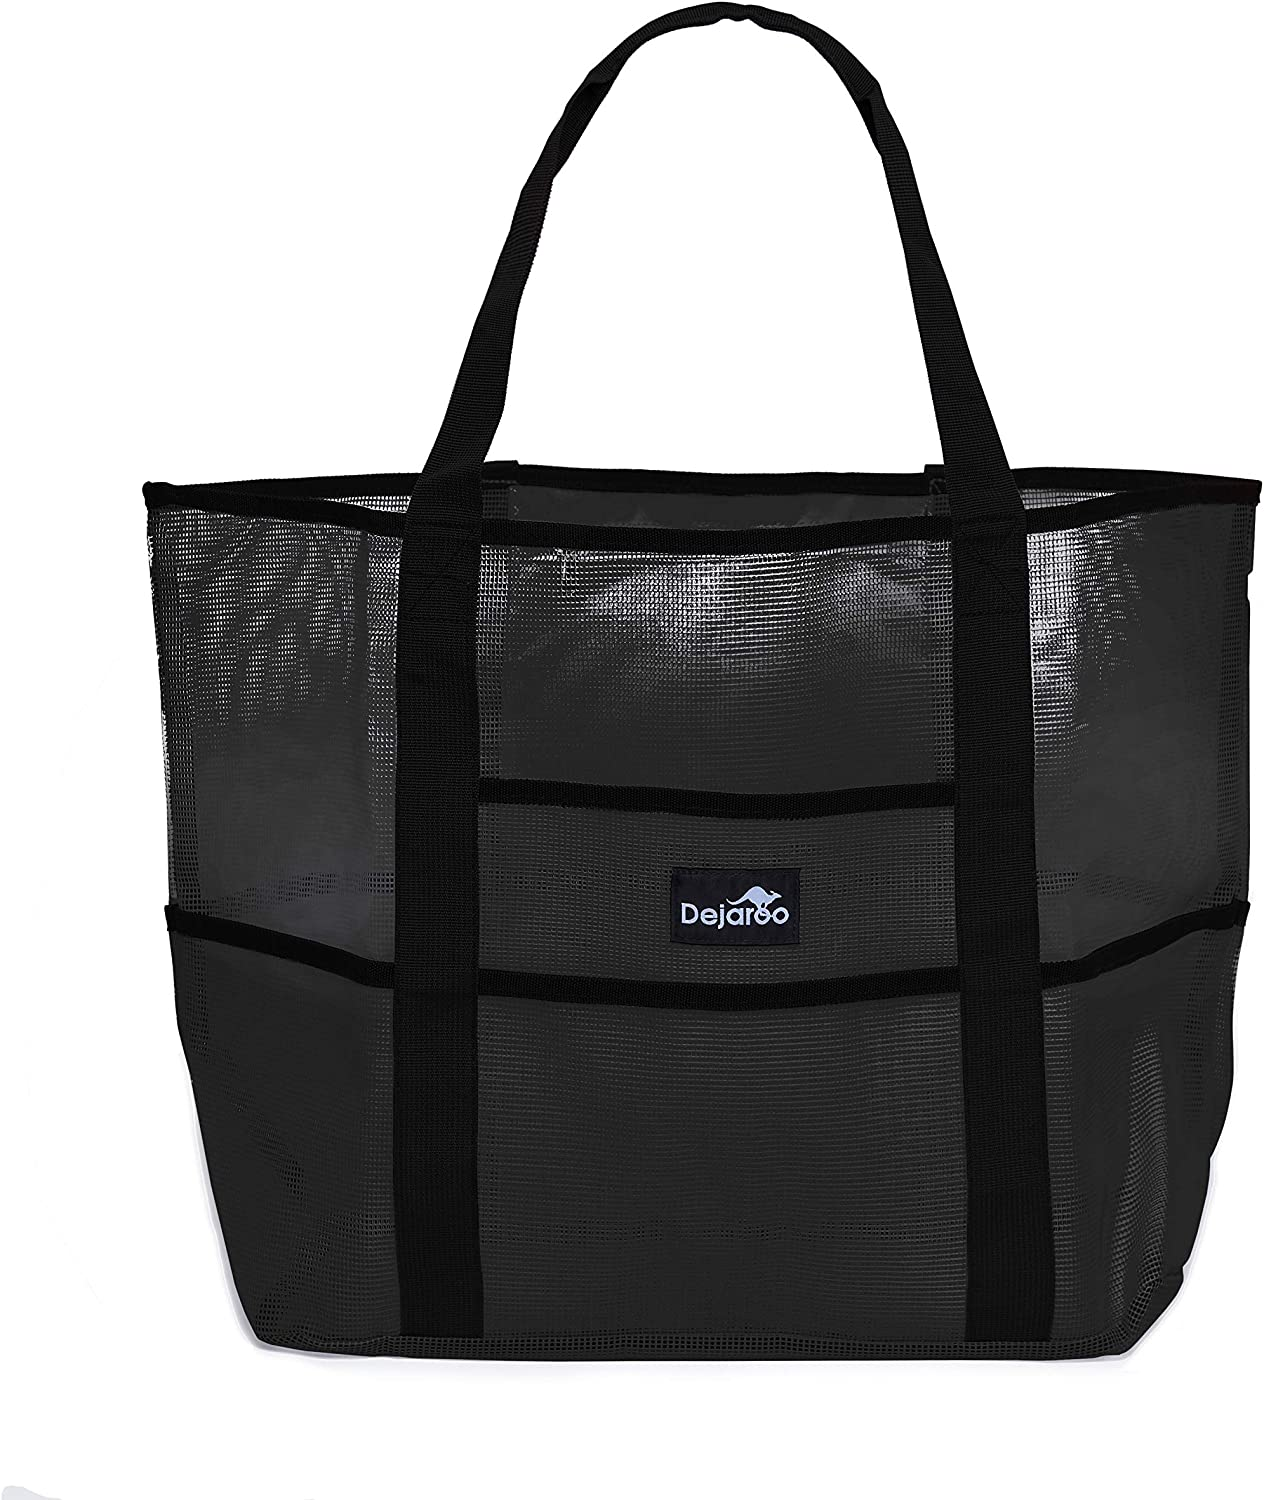 Dejaroo Mesh Selling Beach Bag - Tote Lightweight For 2021 spring and summer new Toys Vacatio